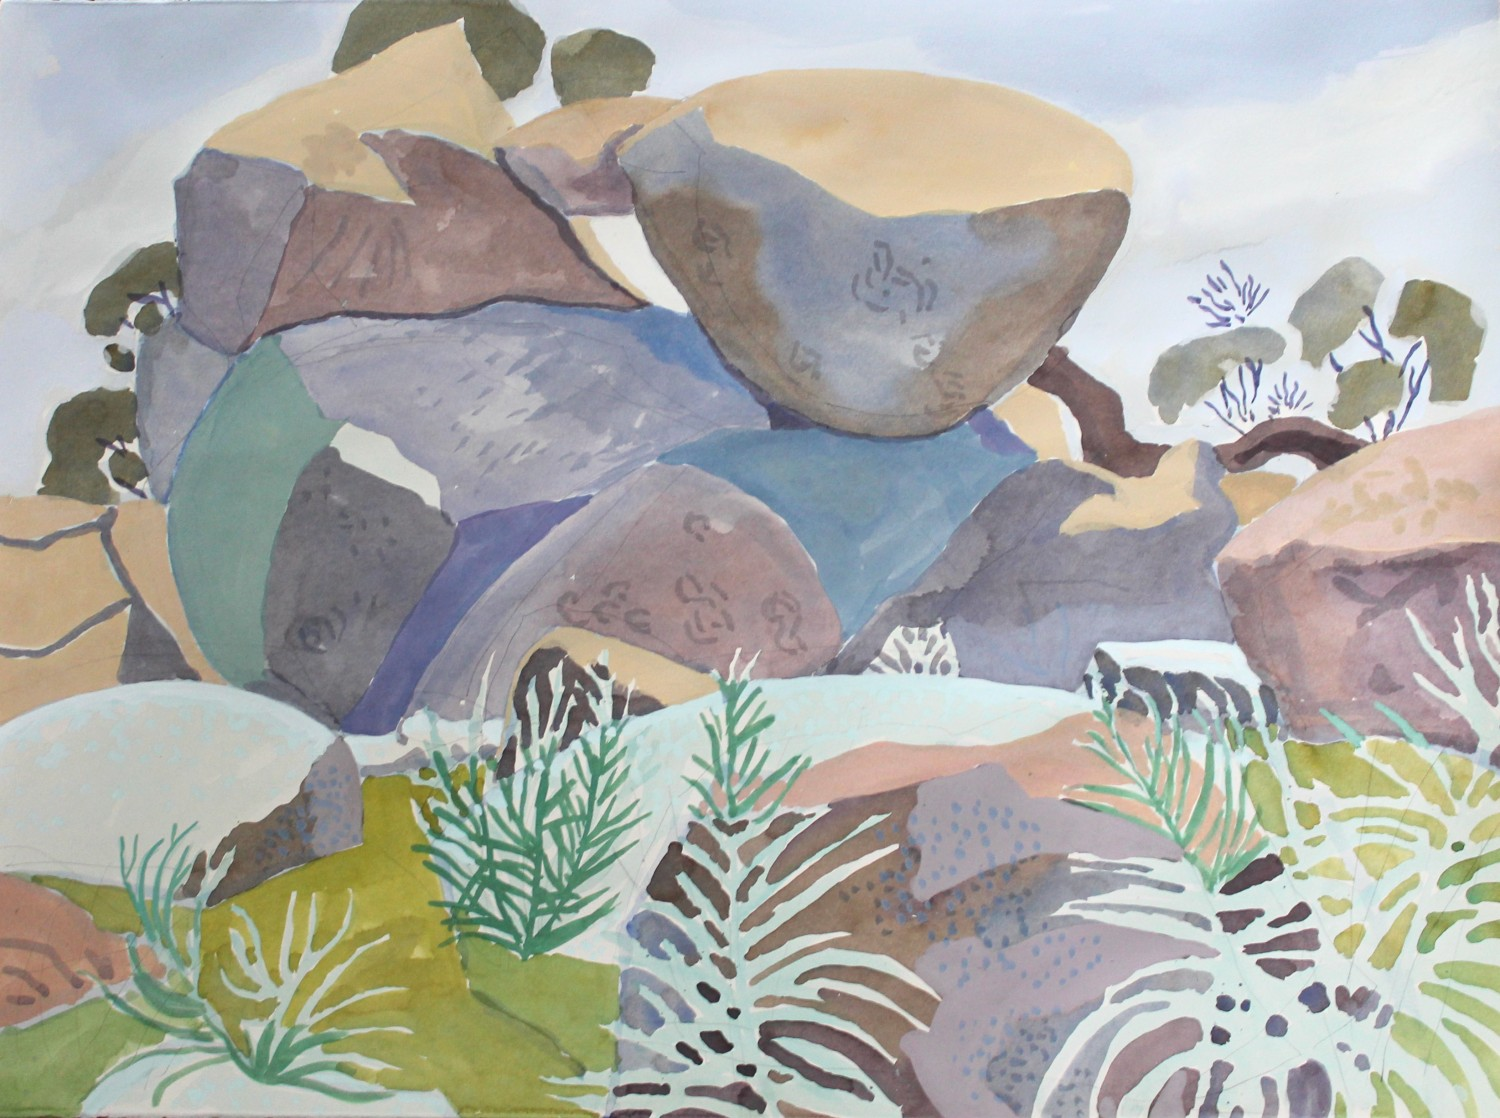 Rocks at Nuggetty Hills, Spring 2020 by Mark Dober